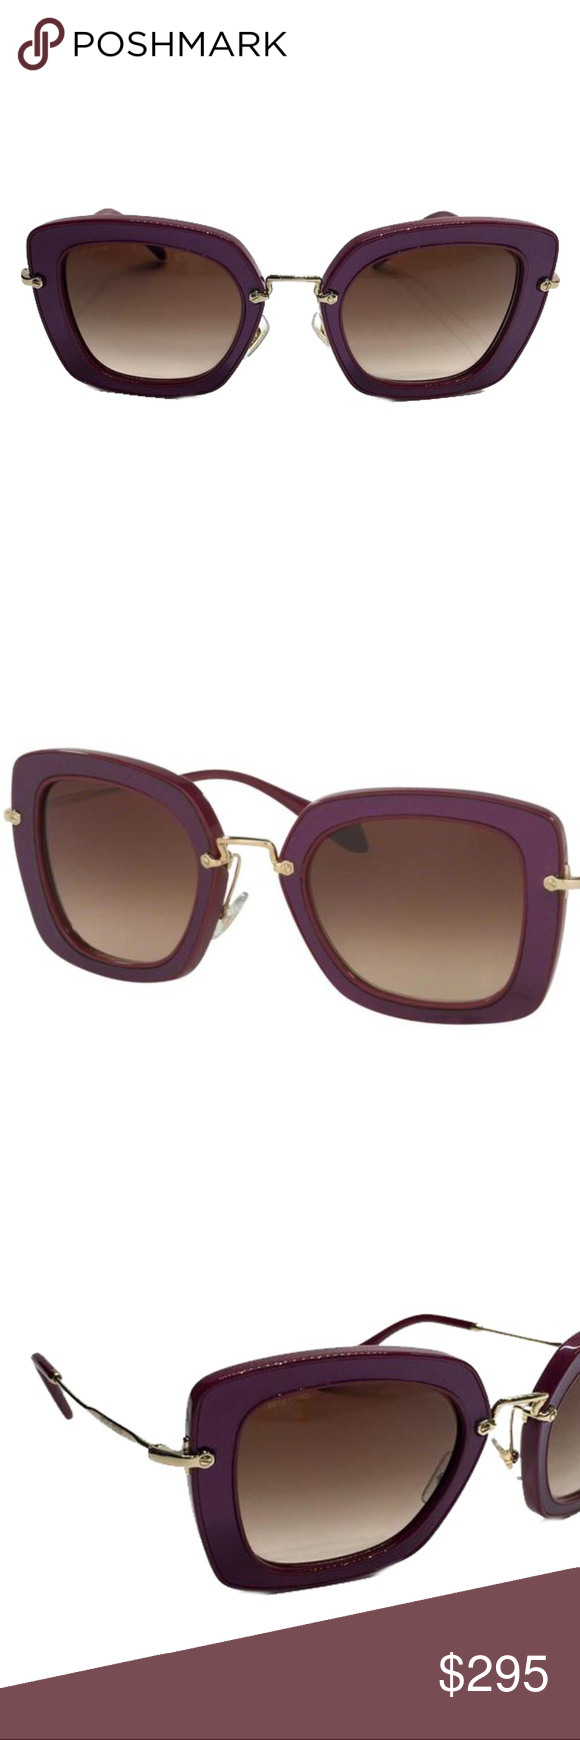 eeb2fe939e8 -Gold Metal and Purple Plastic Frame. -Brown Lenses. -Includes authenticity  cards and Miu Miu Box. -Made in Italy. Miu Miu Accessories